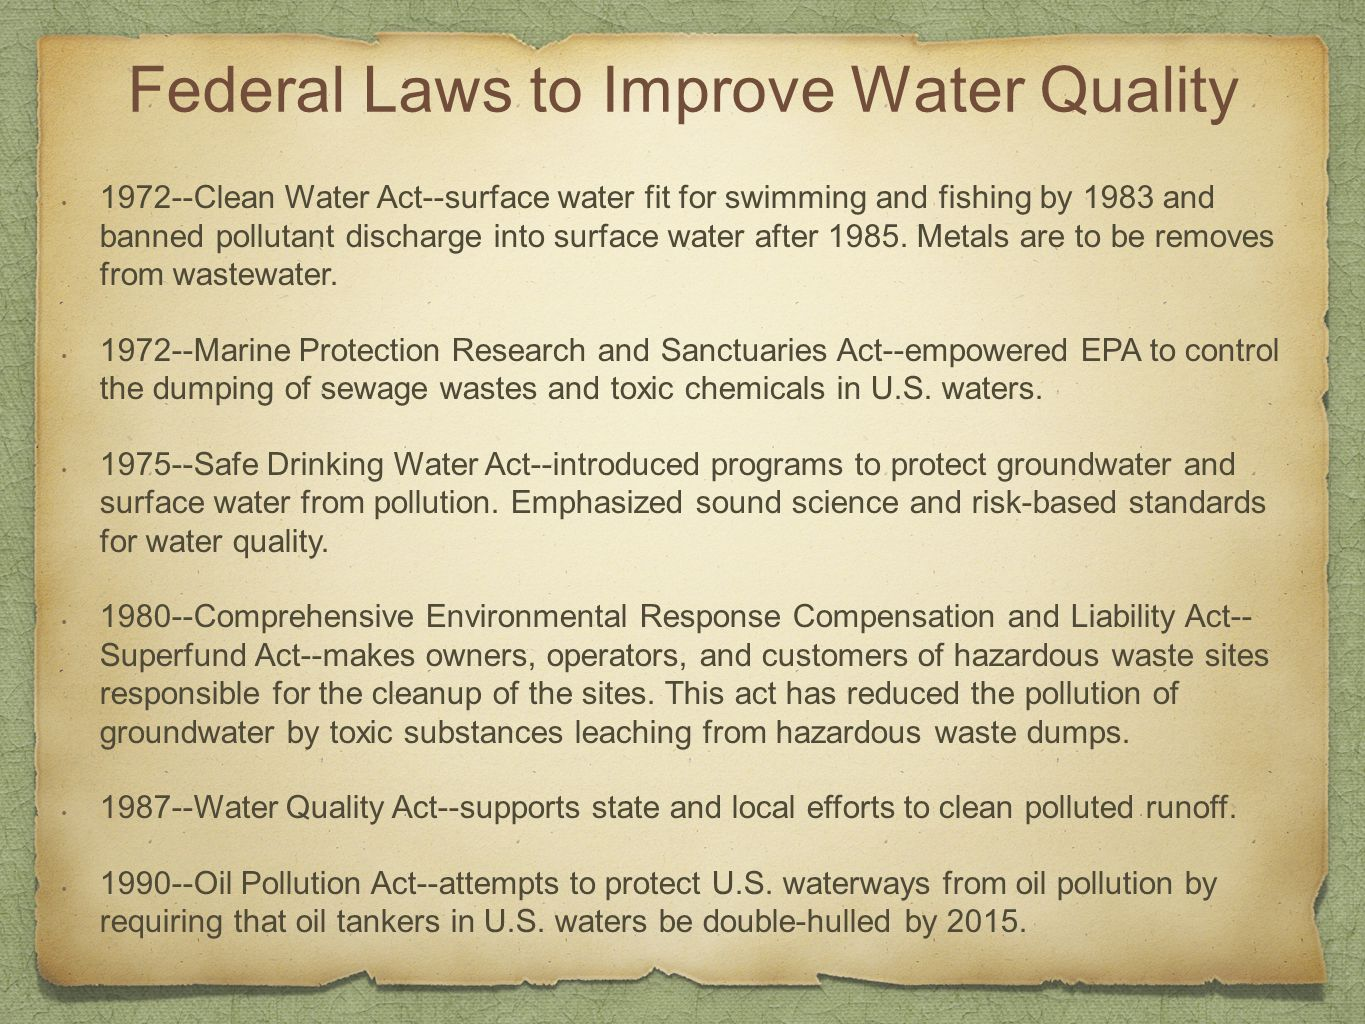 Federal Laws to Improve Water Quality